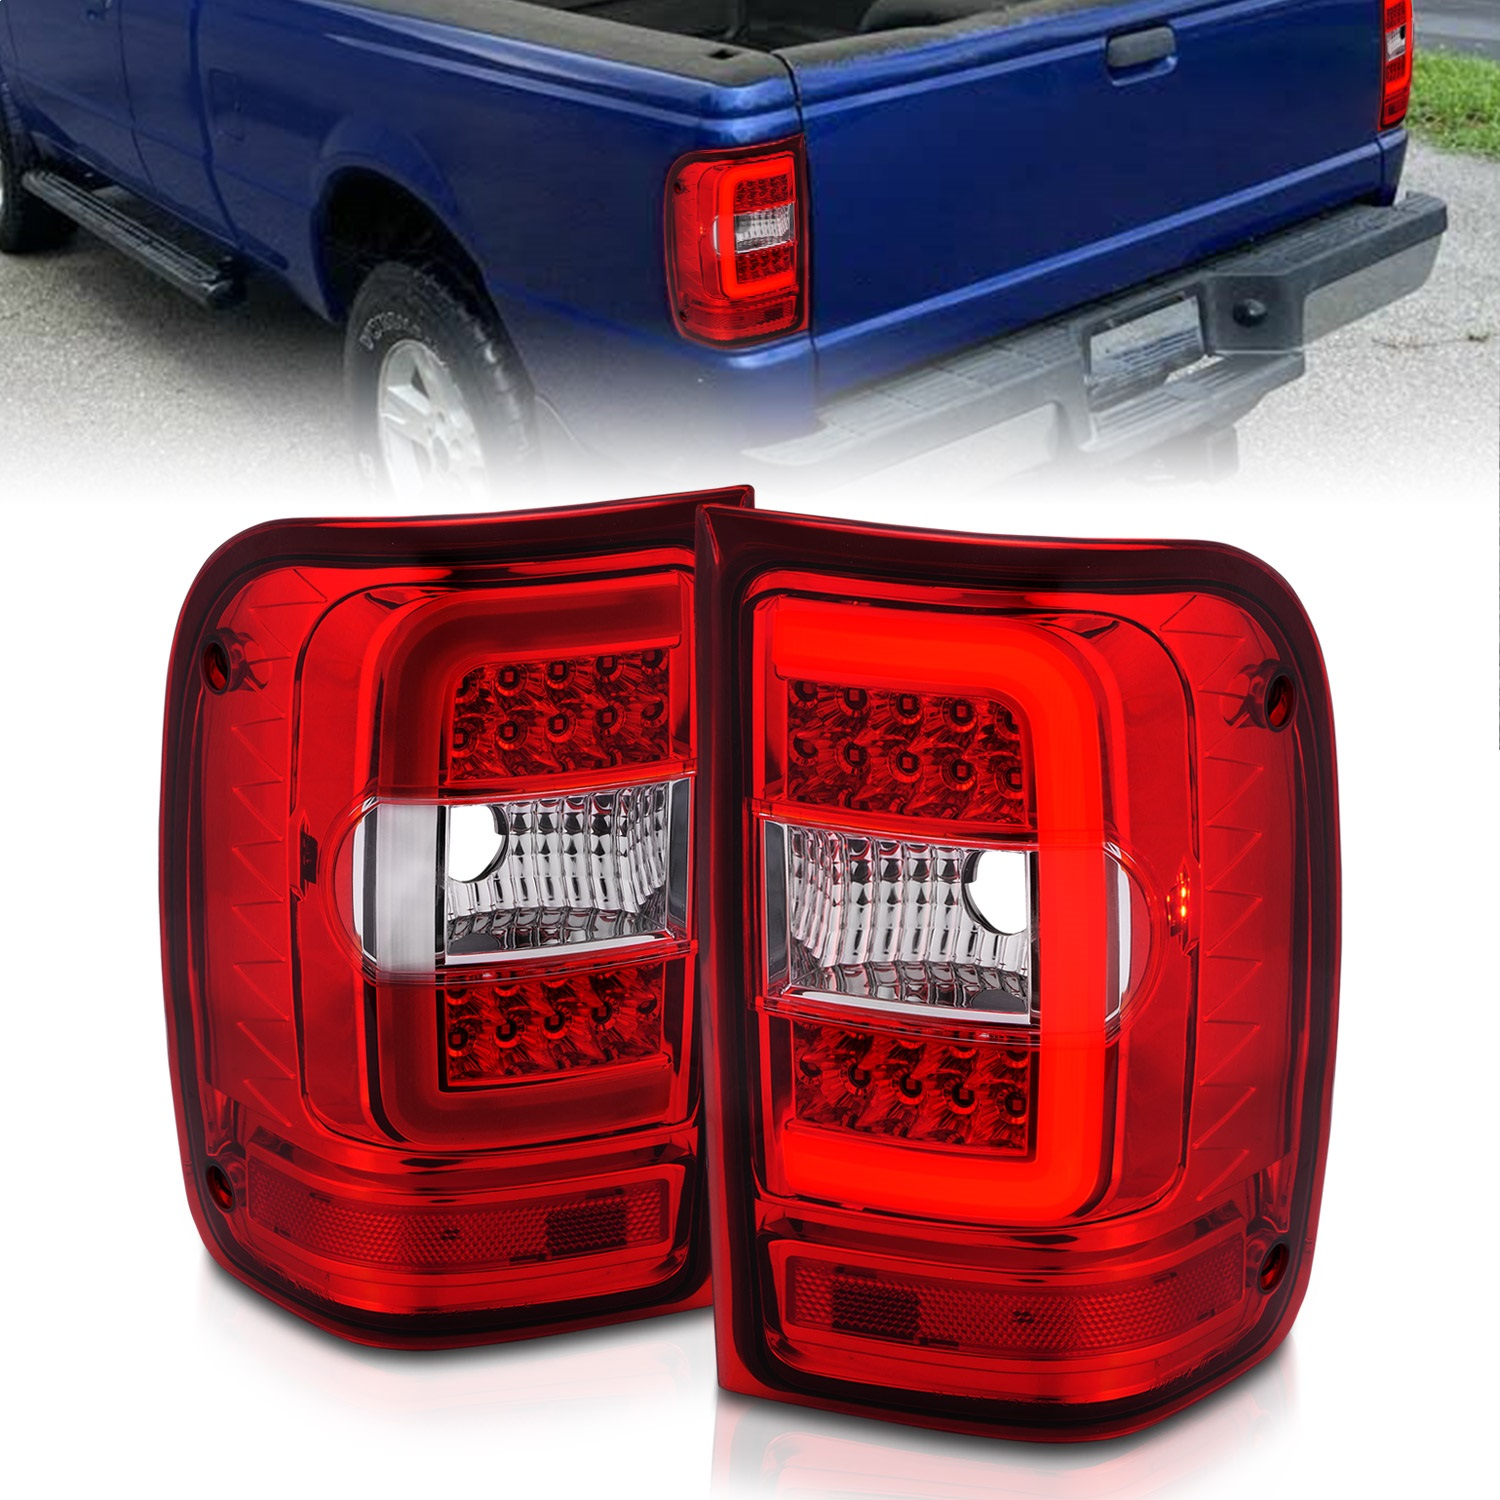 Anzo USA 311393 Tail Light Assembly Fits 01-11 Ranger